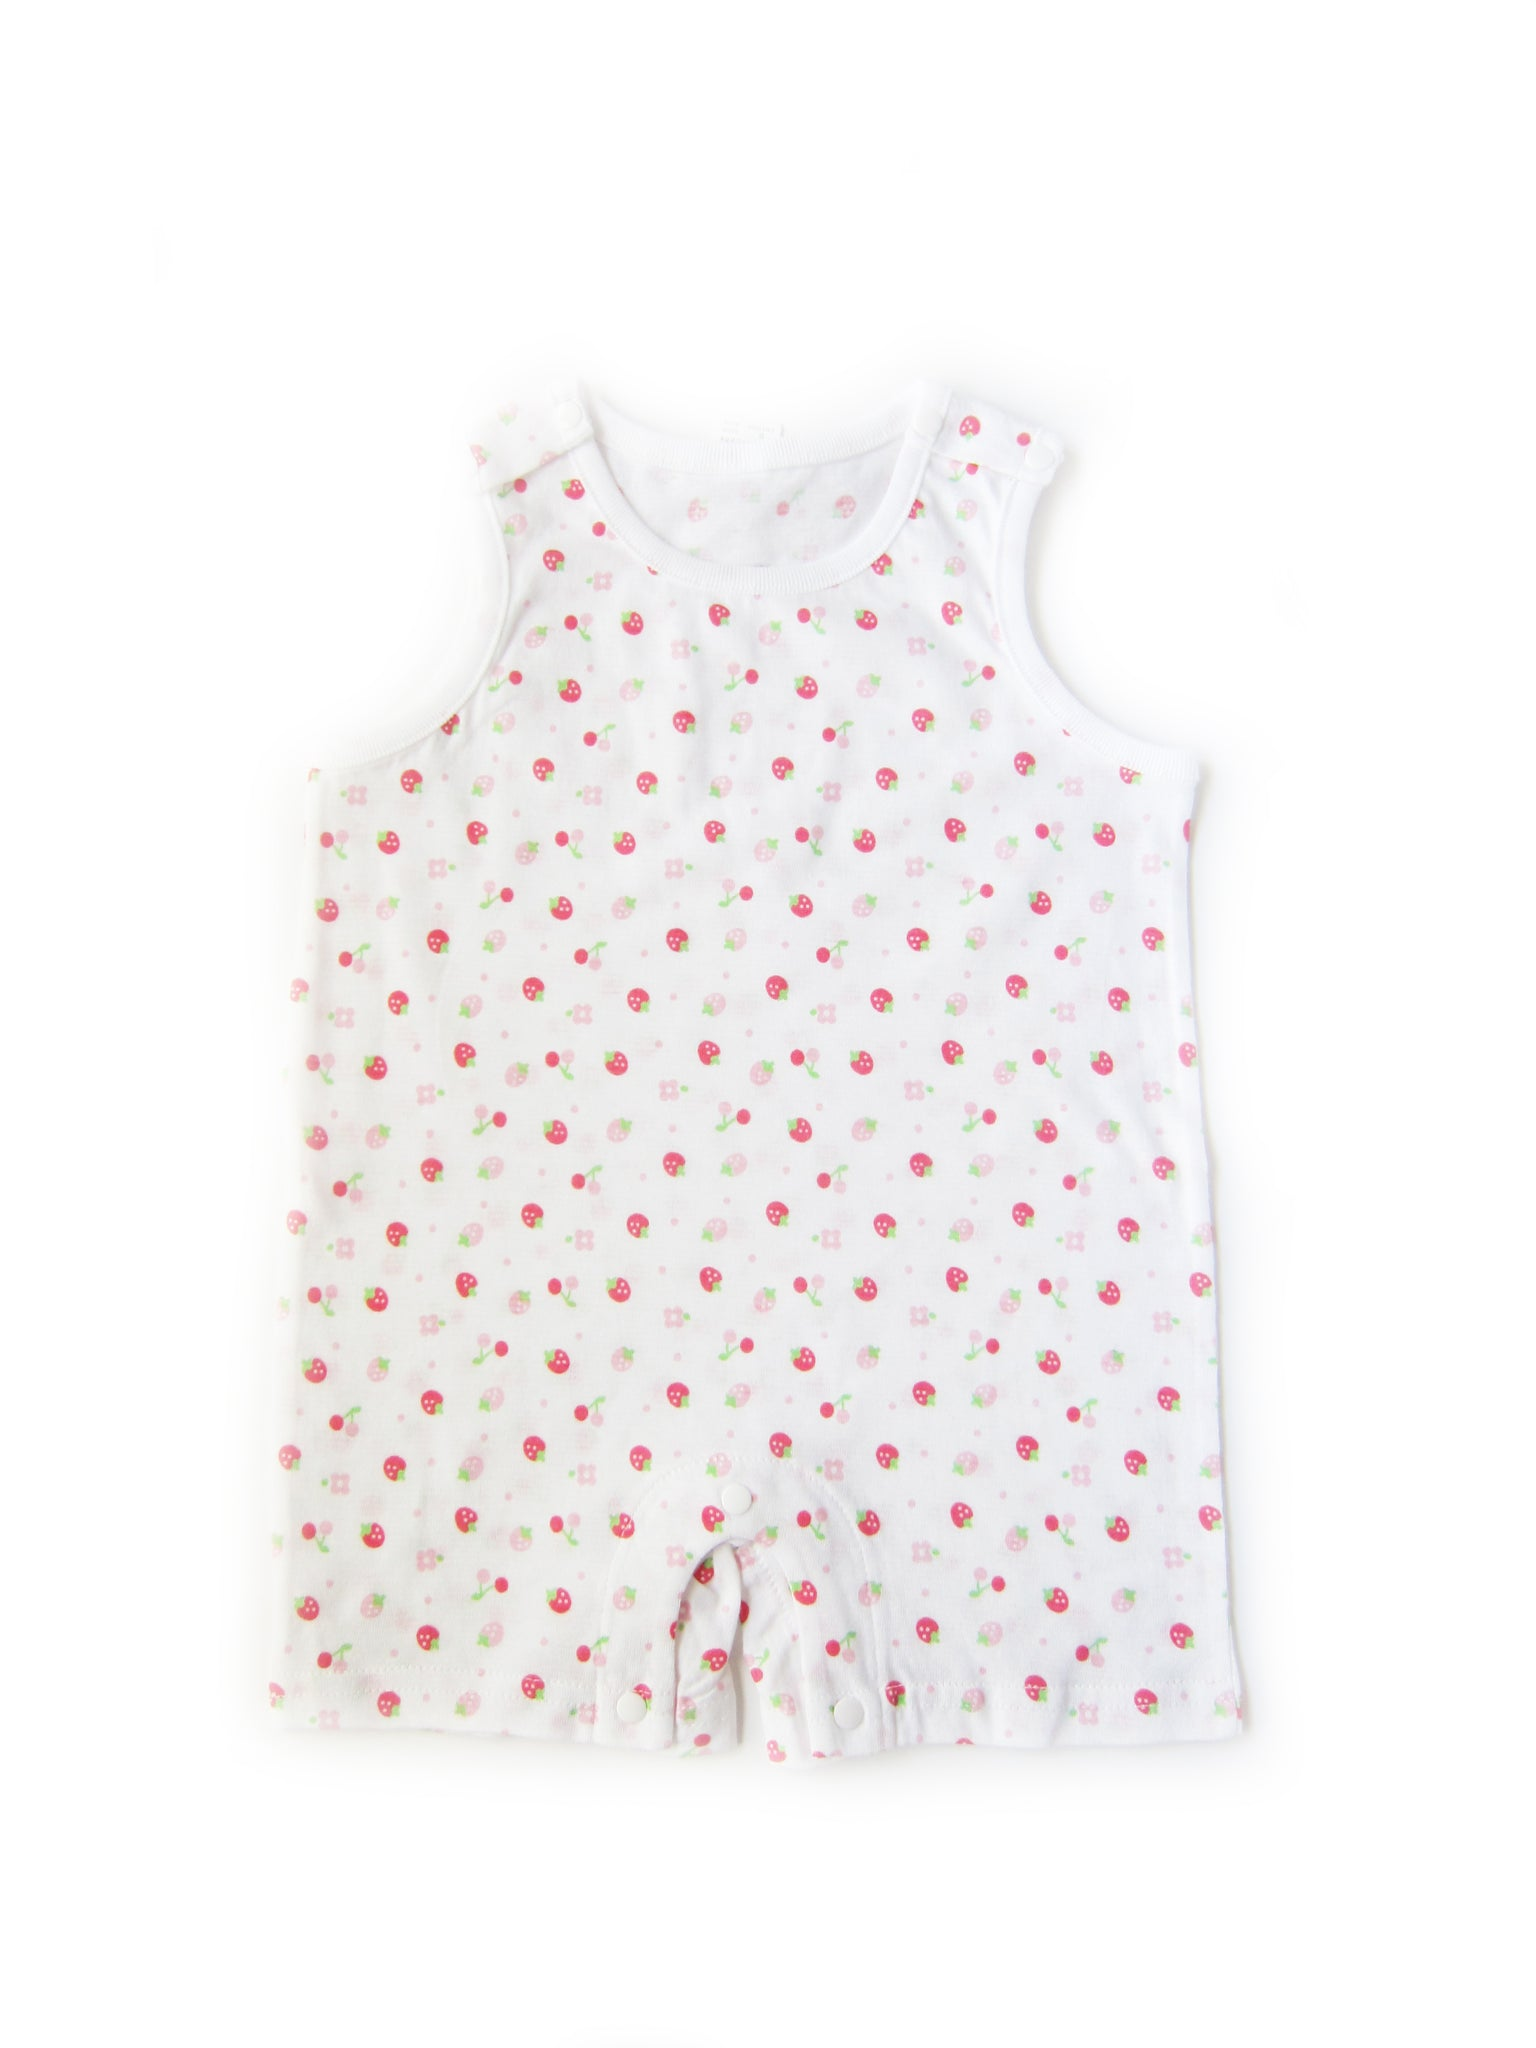 Baby Girl's Pink and Red Strawberry Sleeveless Onesie - Bonjour Bear NB to 12M